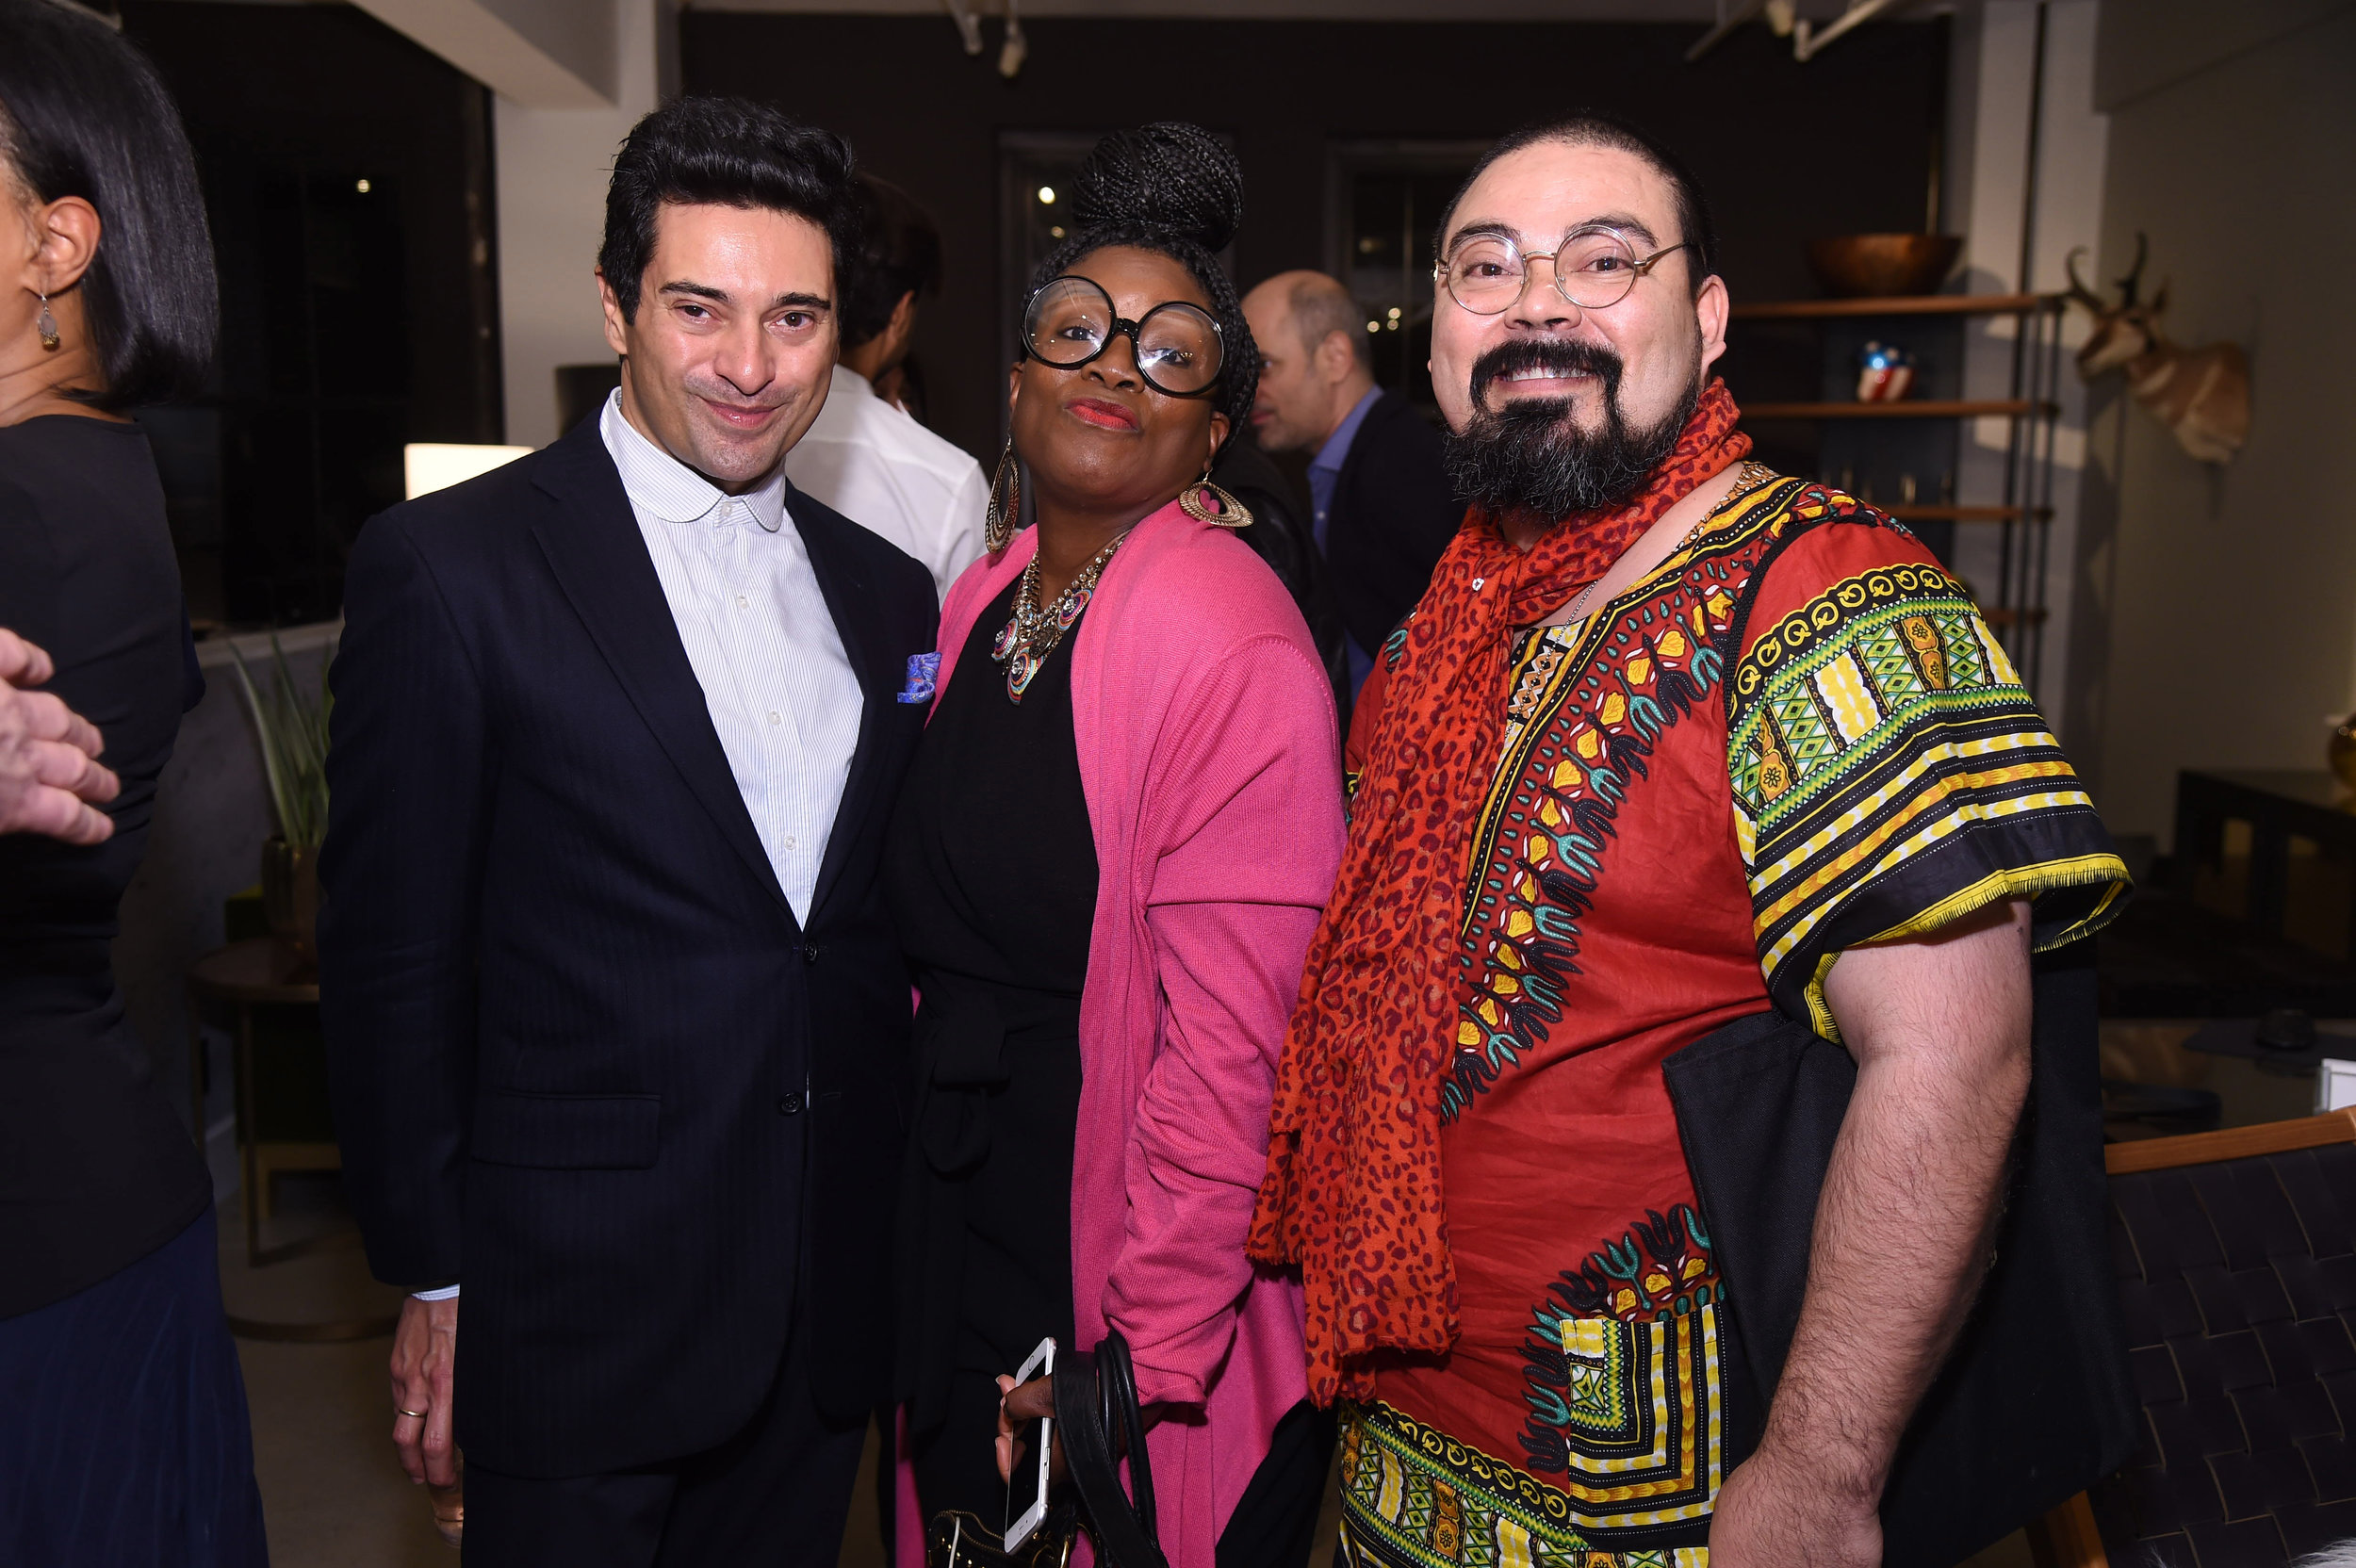 design-on-a-dime-nyc-2017-kick-off-party_33235154781_o.jpg